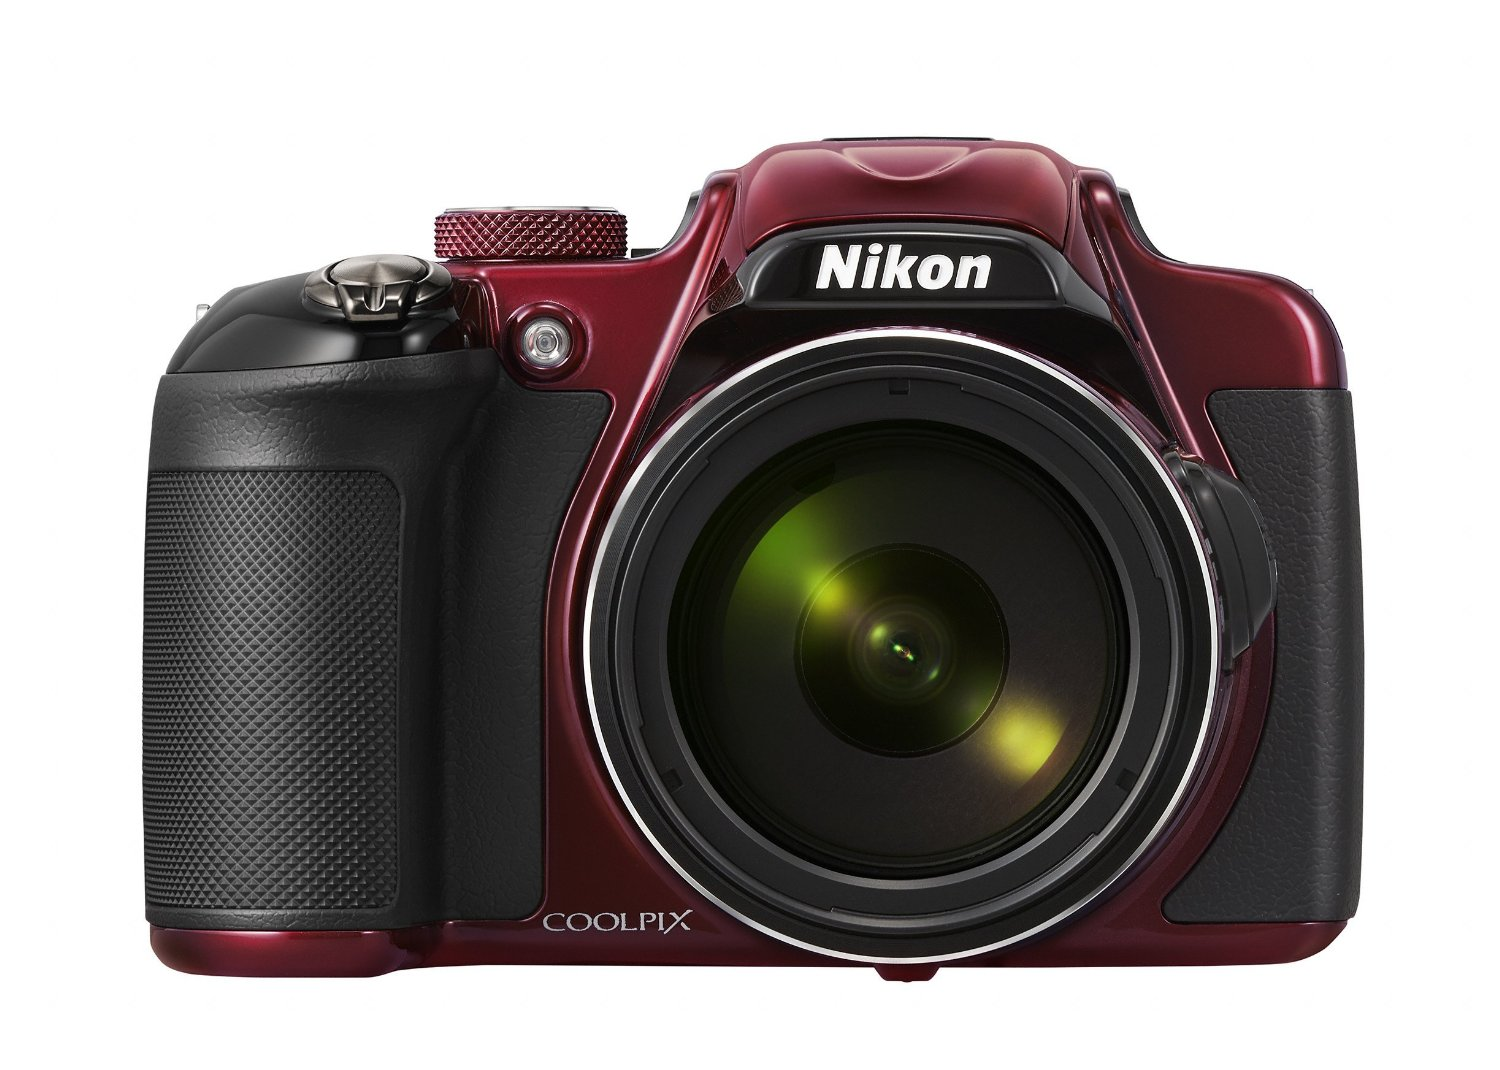 Amazon.com : Nikon COOLPIX P600 16.1 MP Wi-Fi CMOS Digital Camera with 60x Zoom NIKKOR Lens and Full HD 1080p Video (Red)